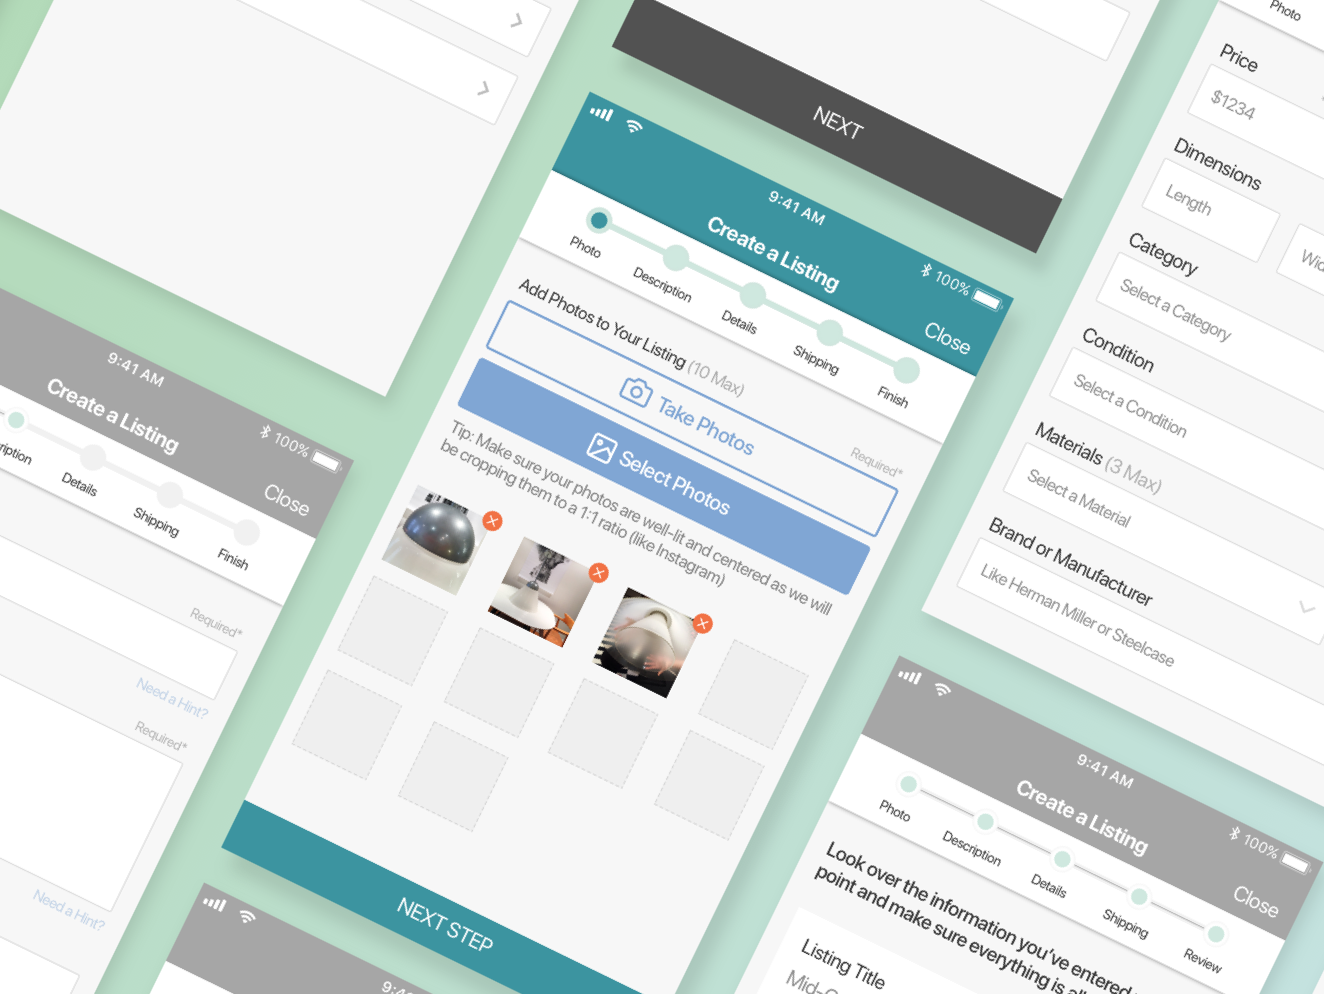 Apartment Therapy Marketplace Seller Experience Wireframes progress indicator concept photo uploader ios app markerplace product design ux ui wireframes apartment therapy